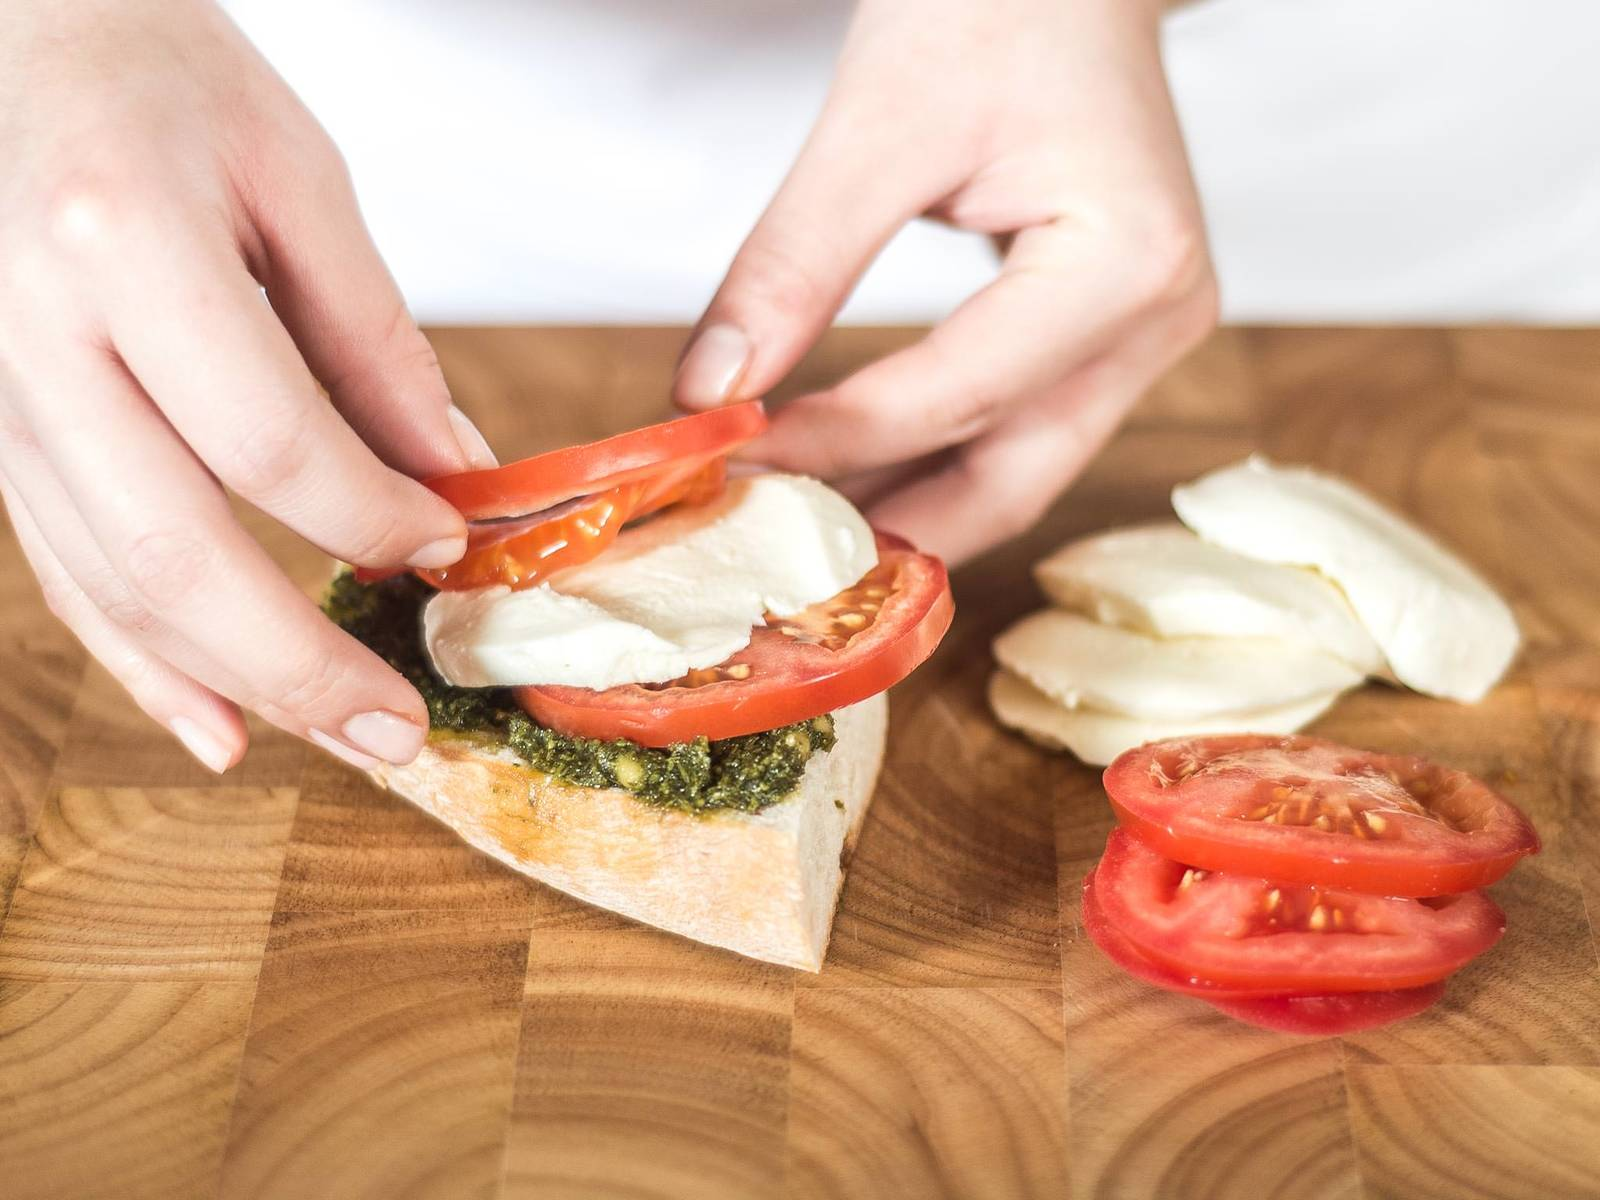 Next, spread the pesto onto the bread and place alternating layers of tomato and mozzarella slices on top.